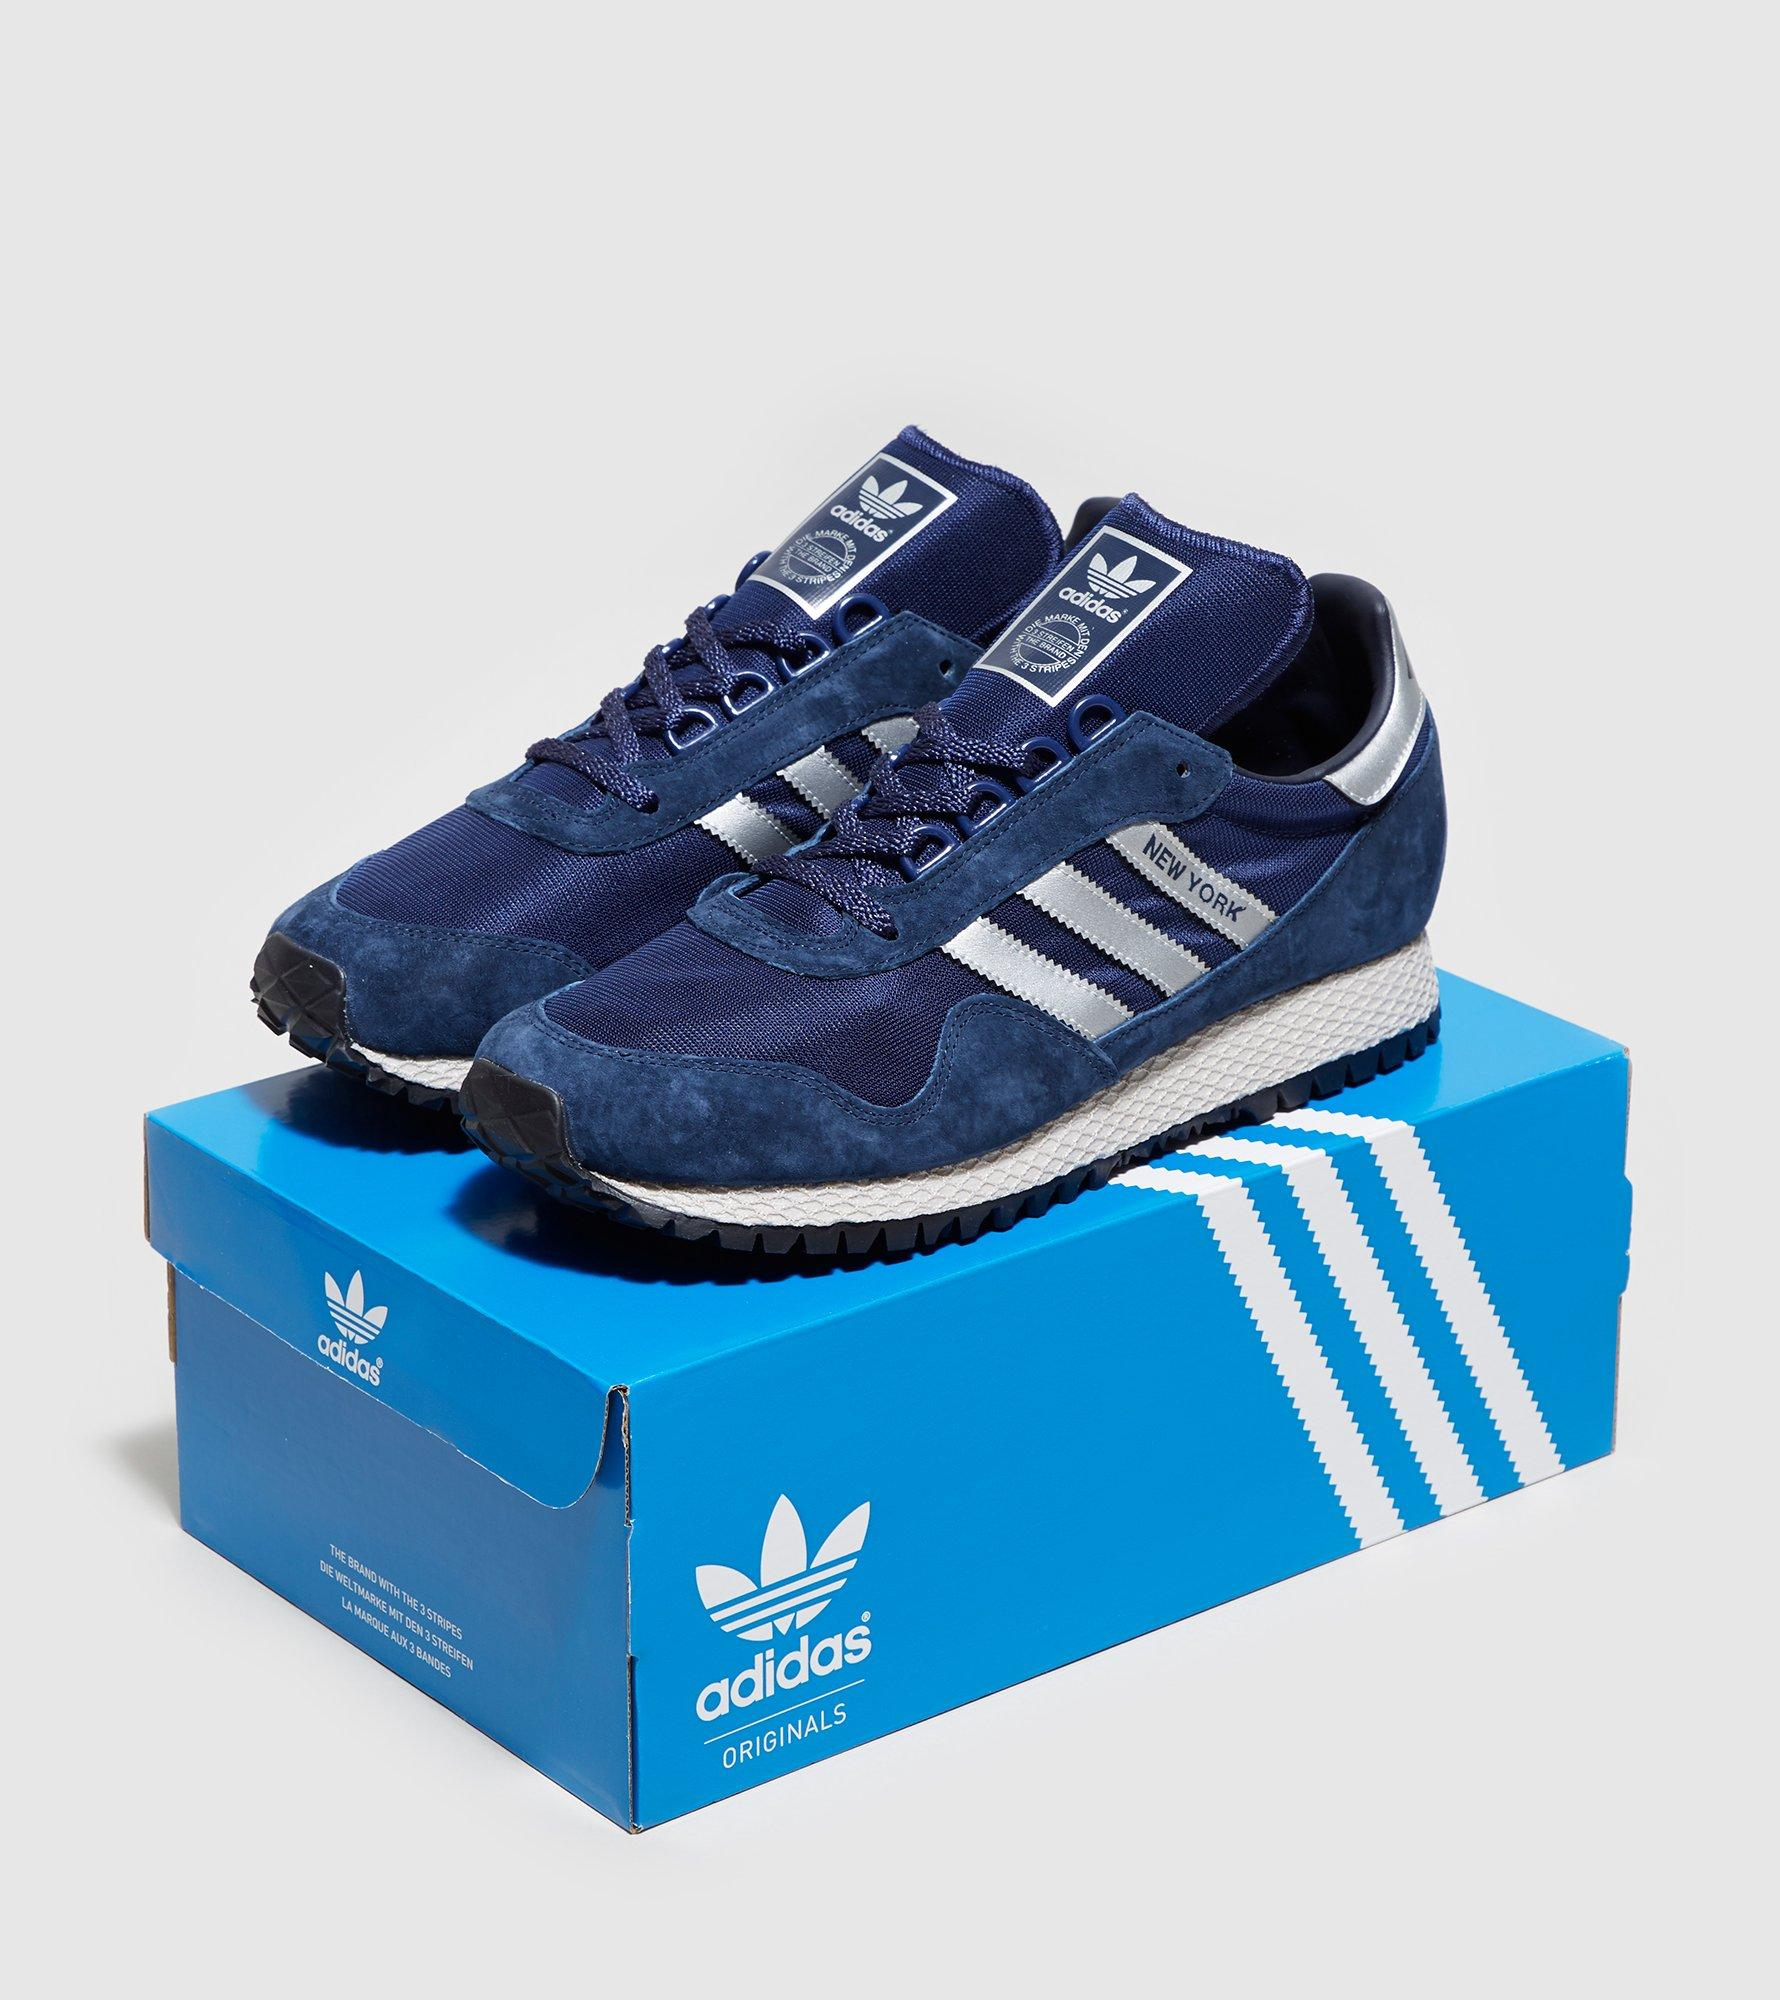 adidas originals new york